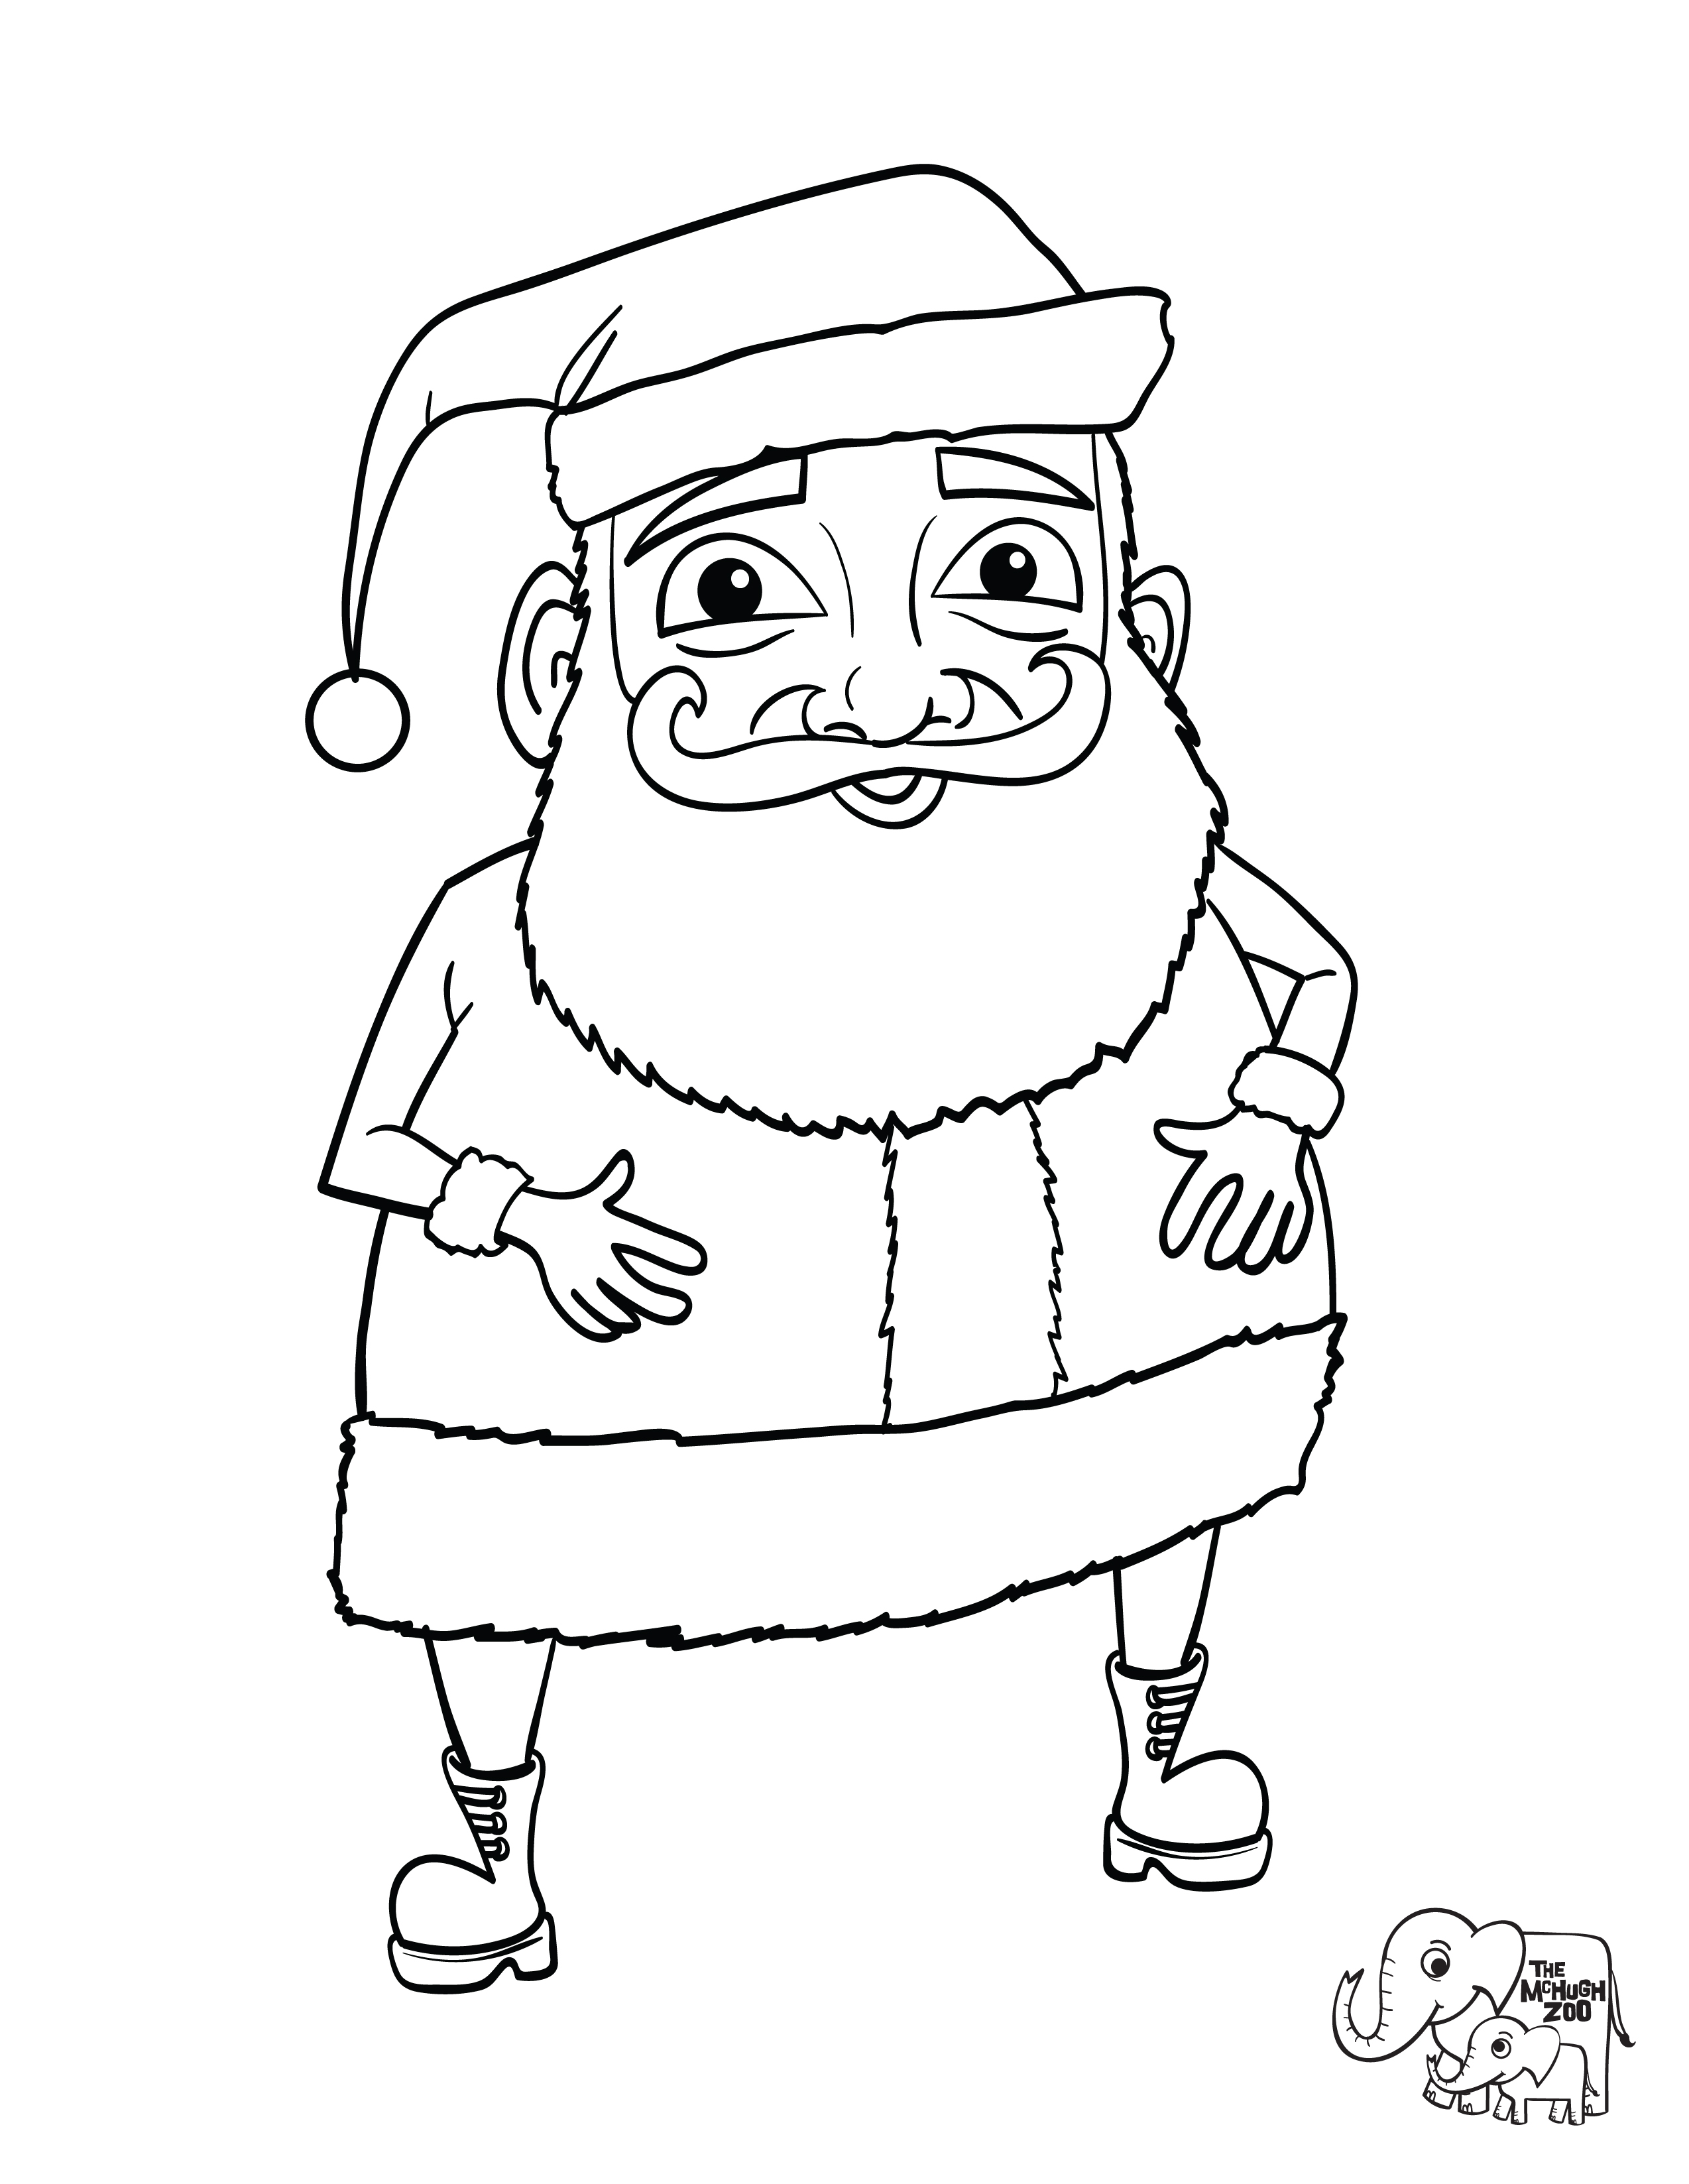 buddy the elf coloring pages - photo#14